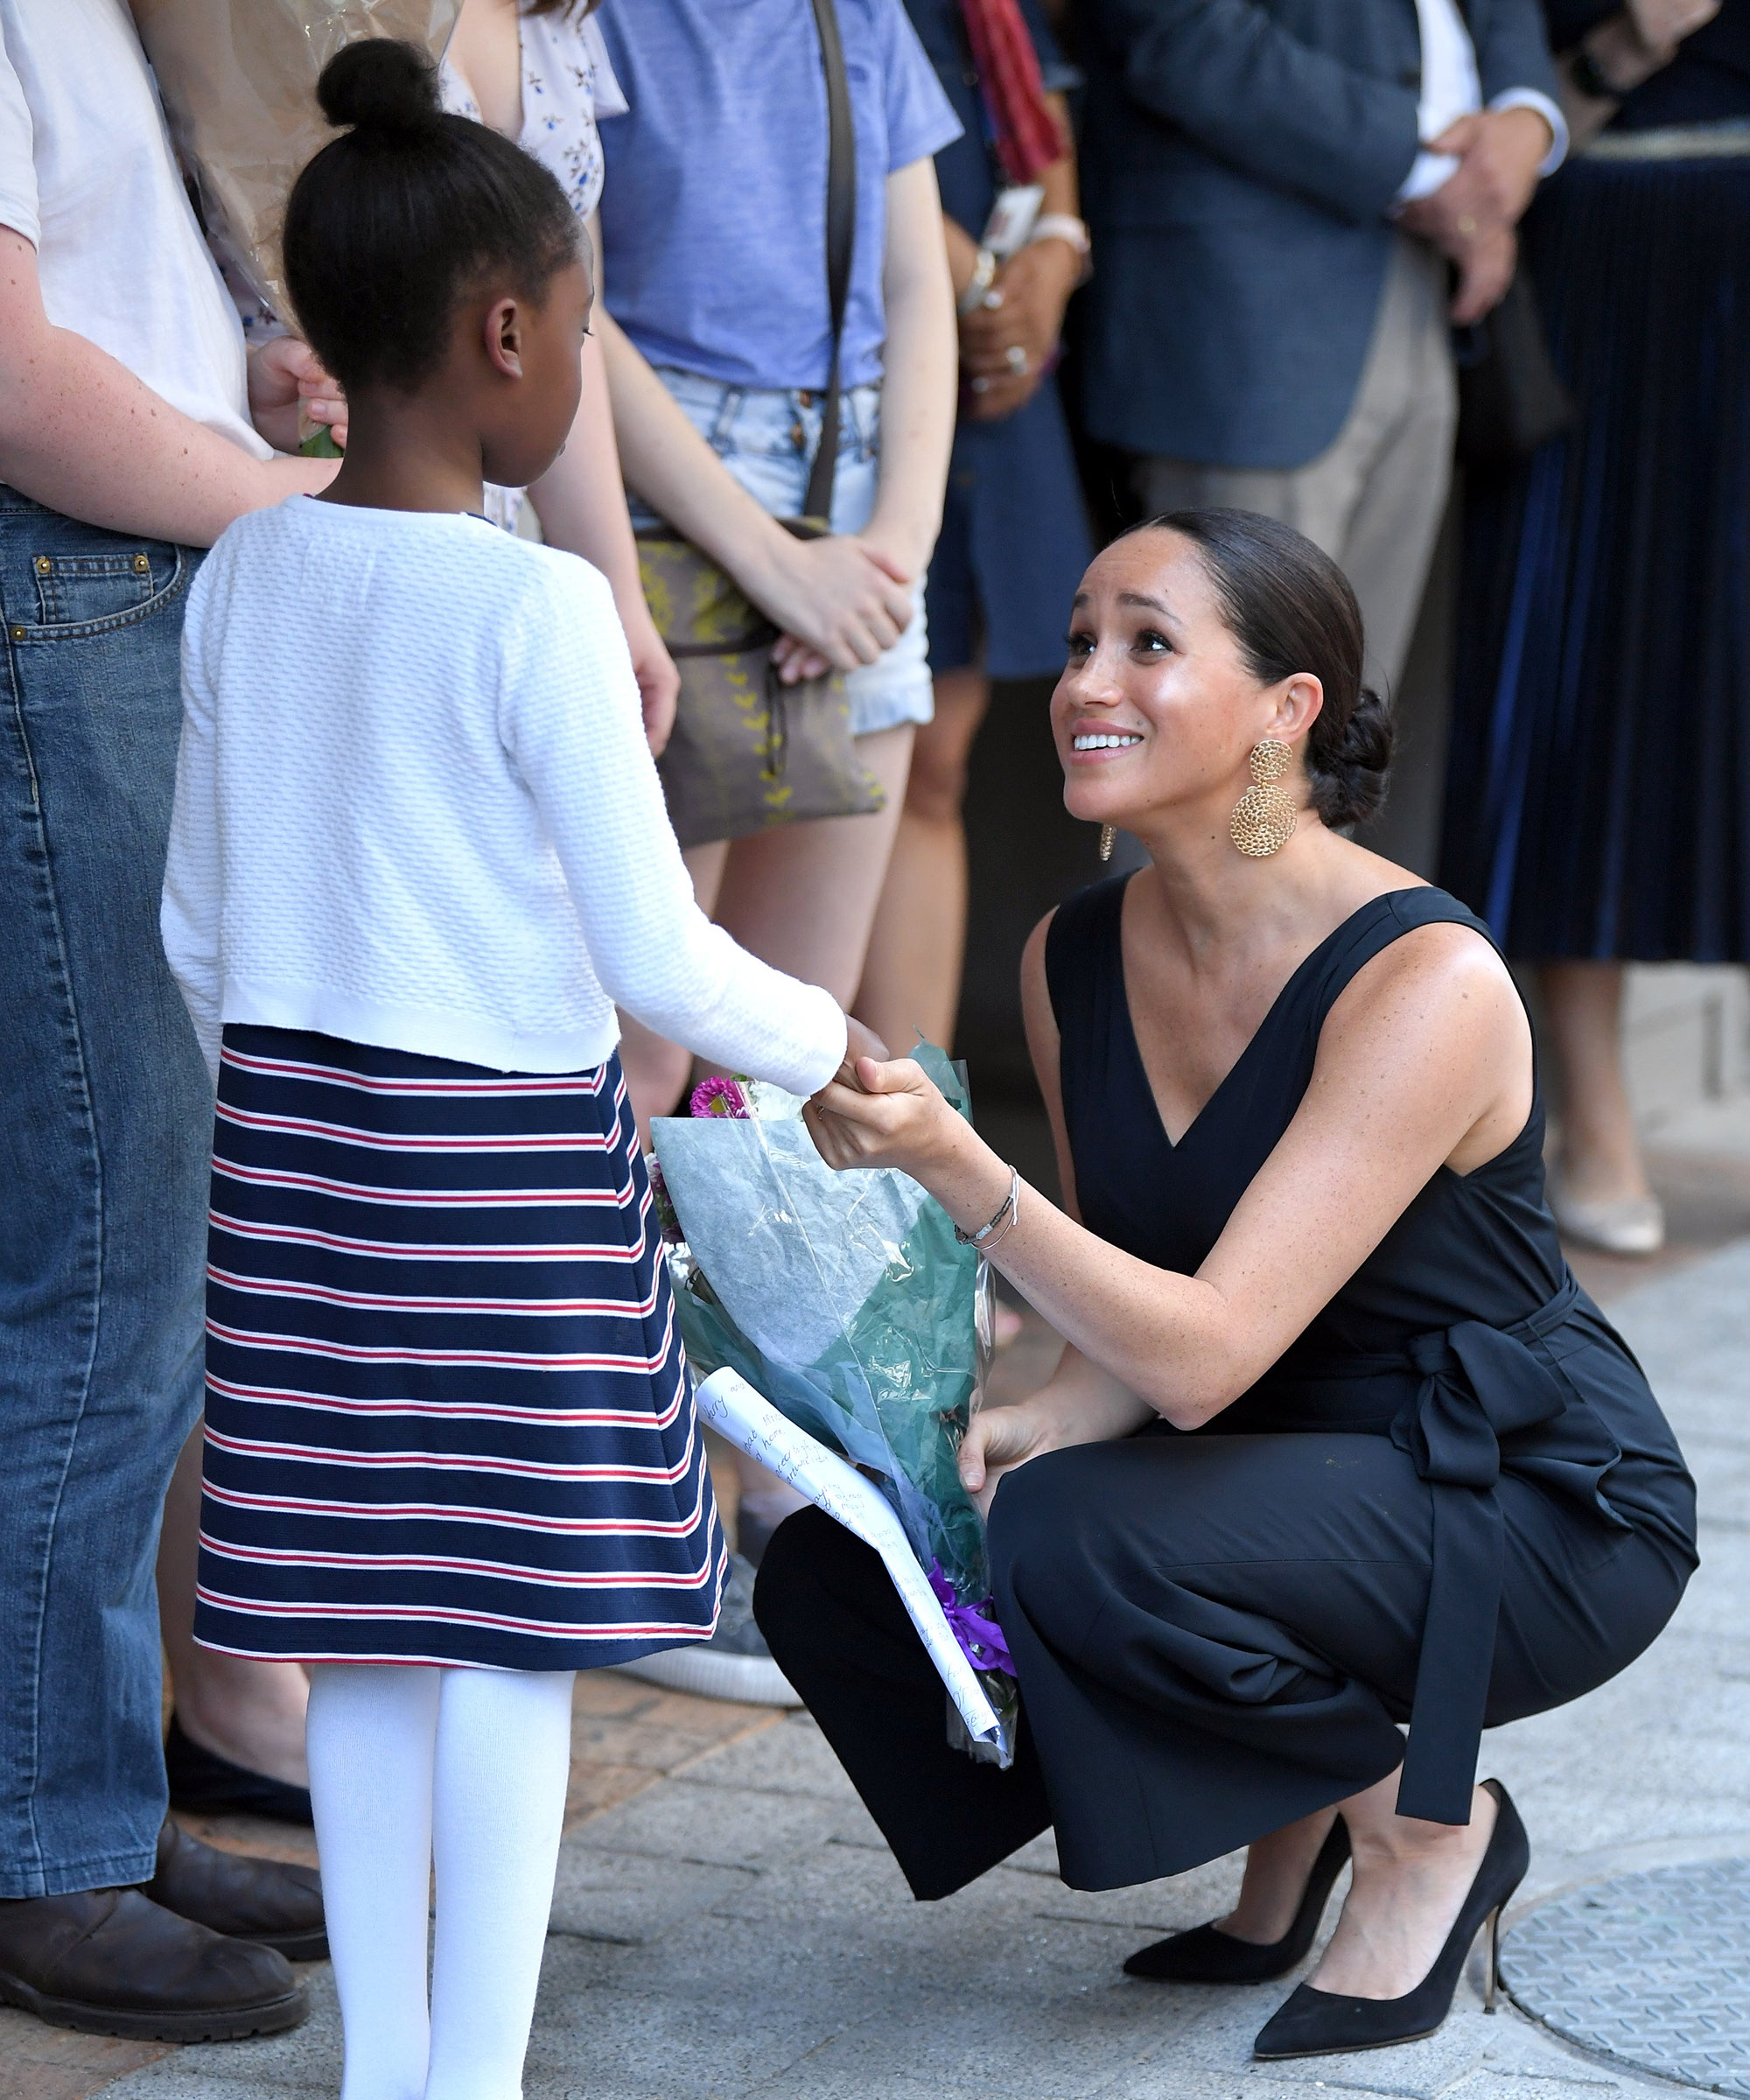 Meghan Markle Stands Up For Women's Rights In A Country Where They're Under Attack